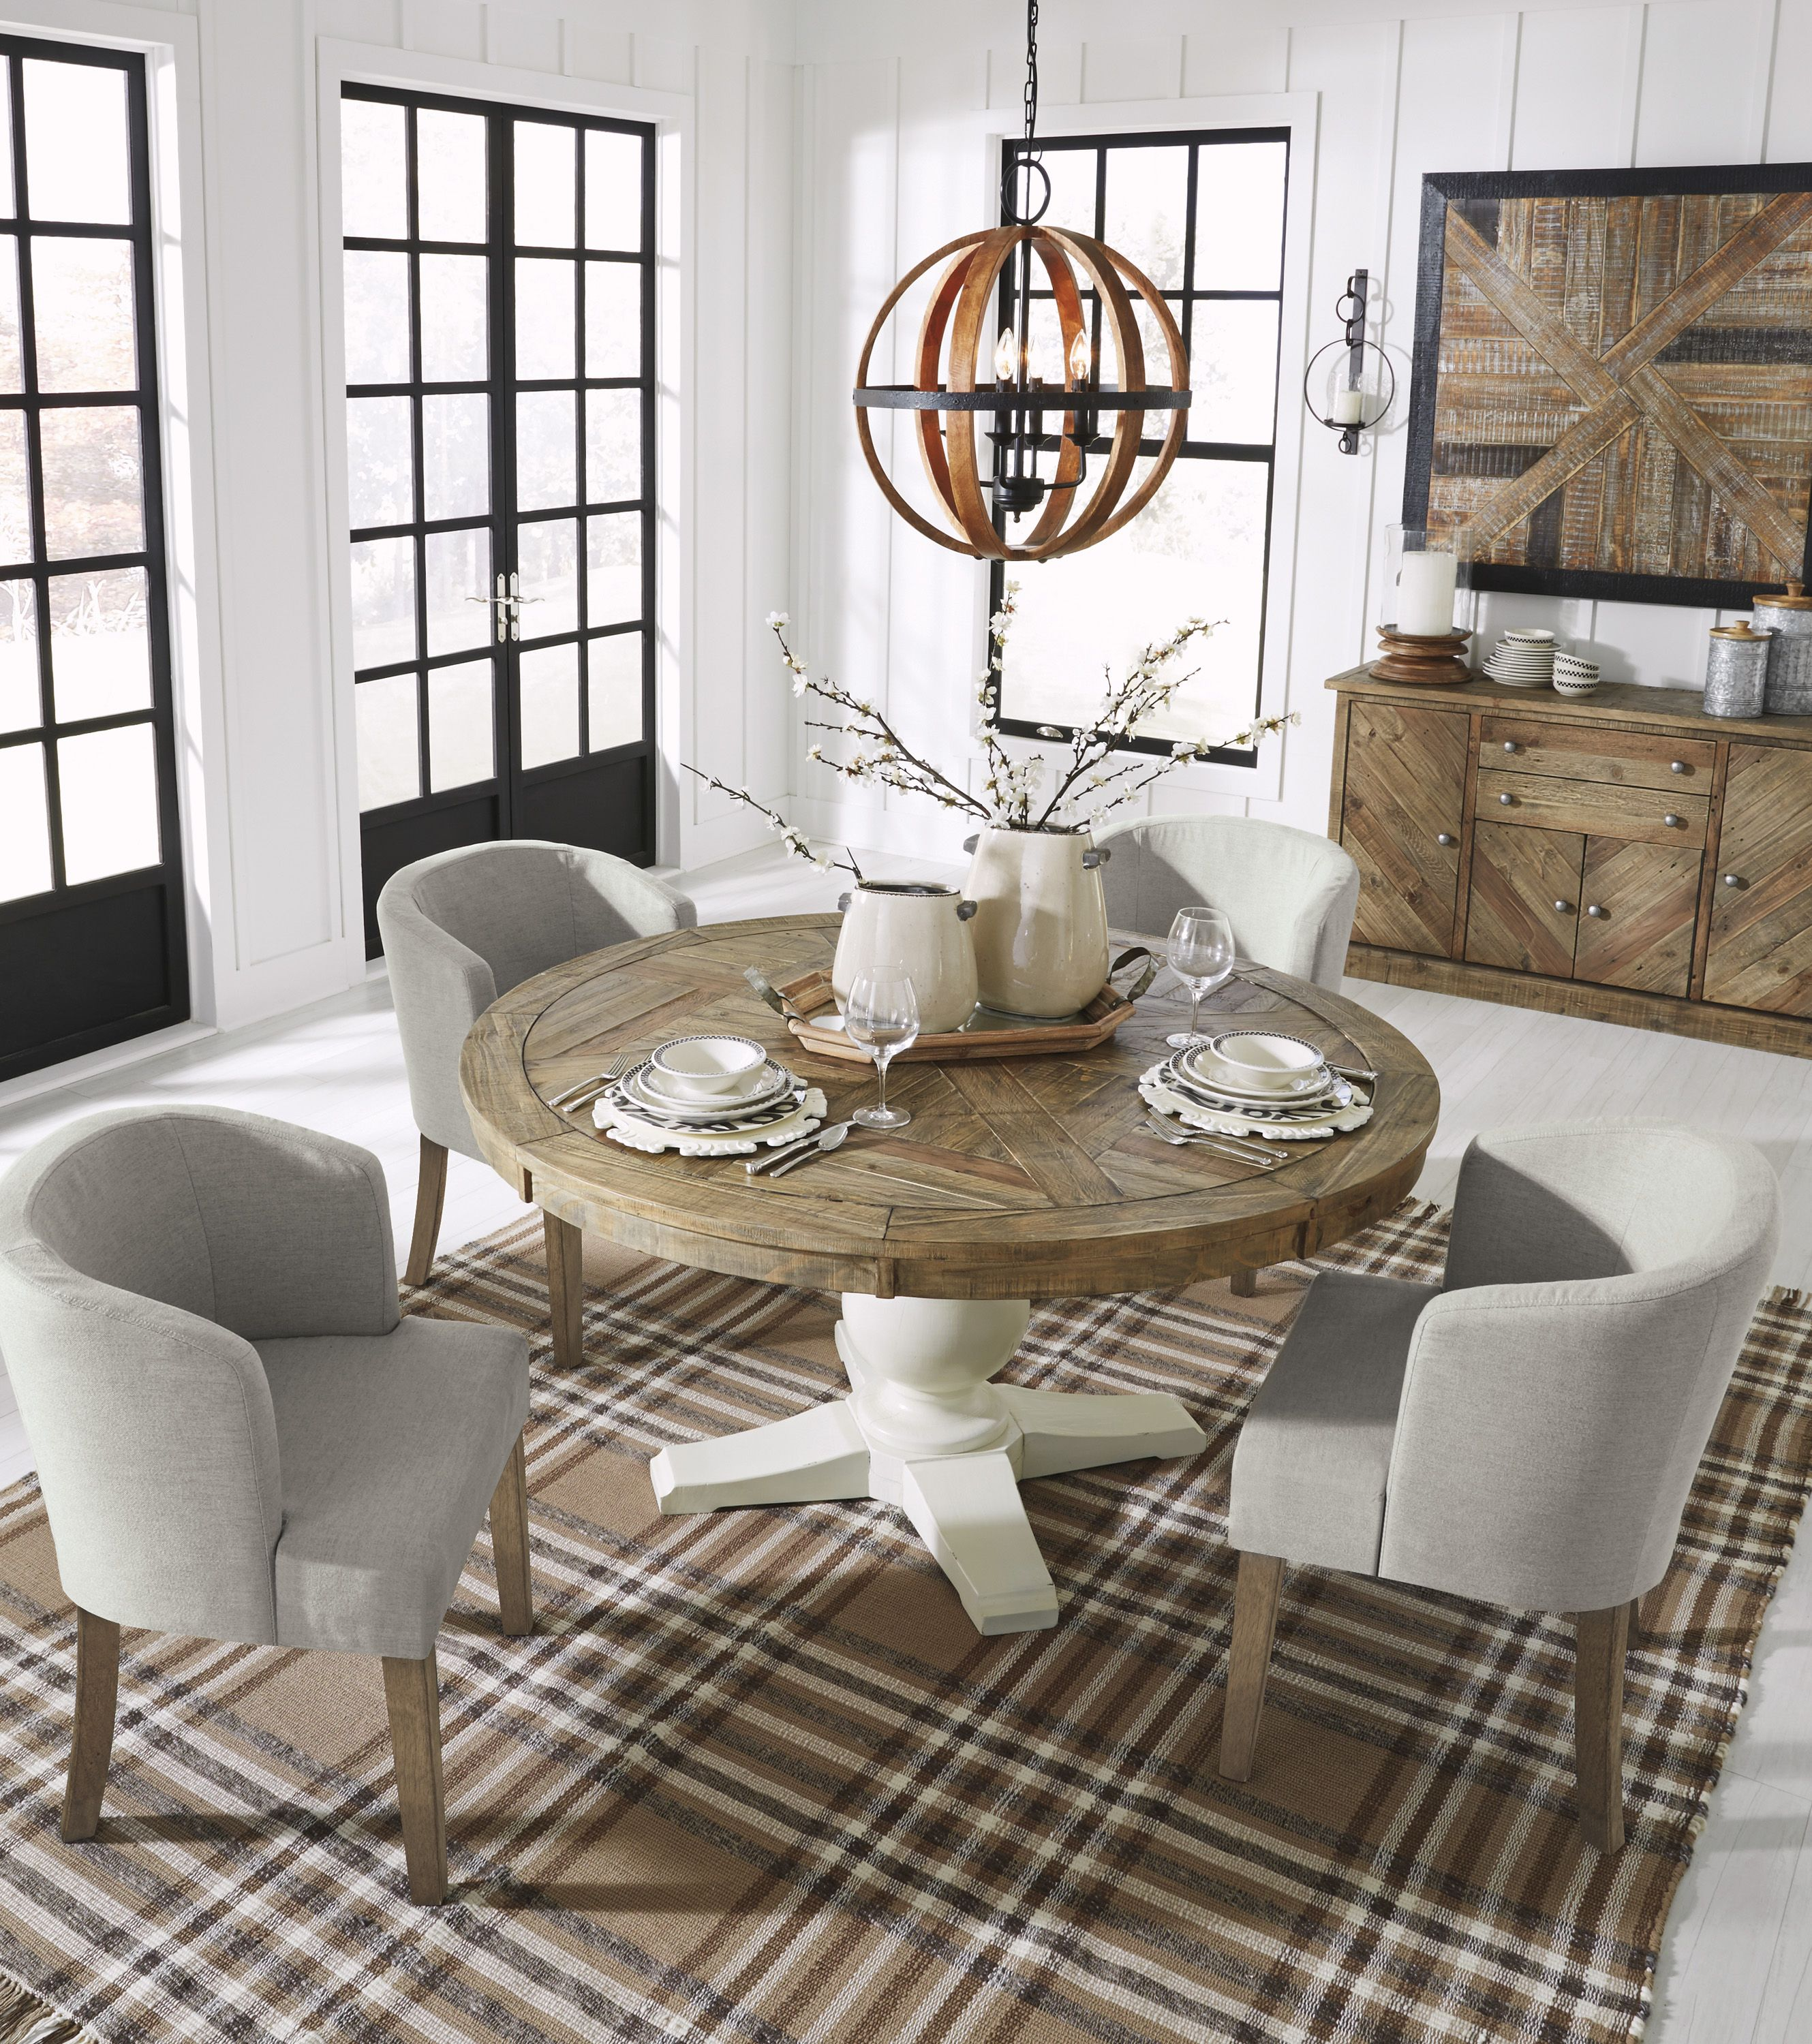 6bb12ed60f3a8 Grindleburg dining room is a well-made country cottage inspired set.  Crafted with reclaimed